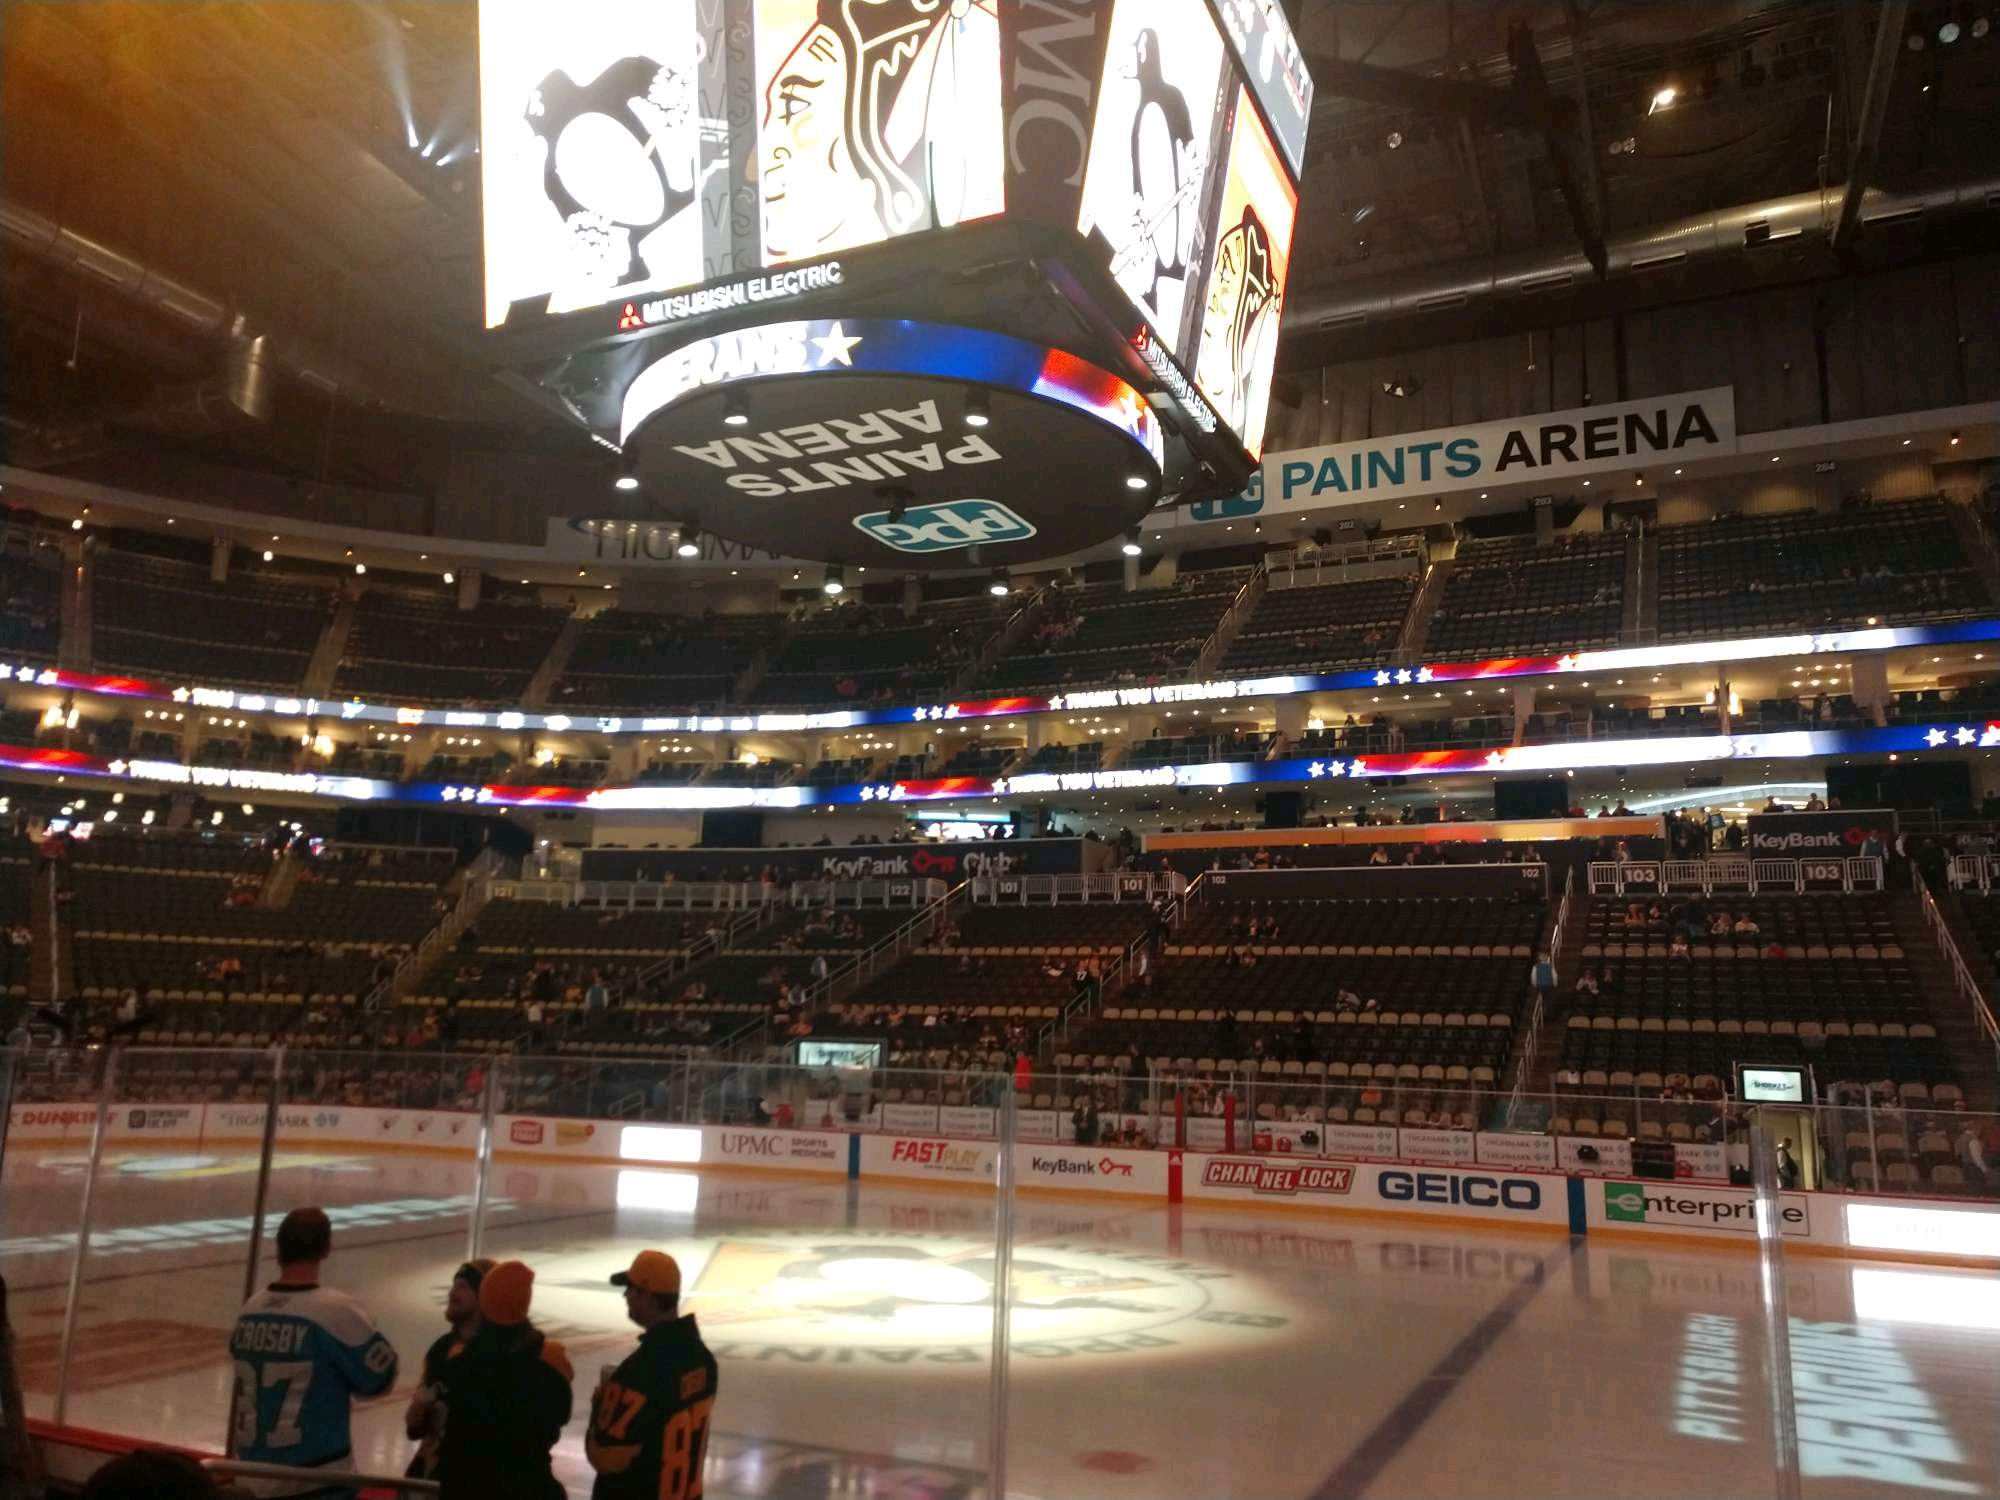 PPG Paints Arena Section 111 Row F Seat 8